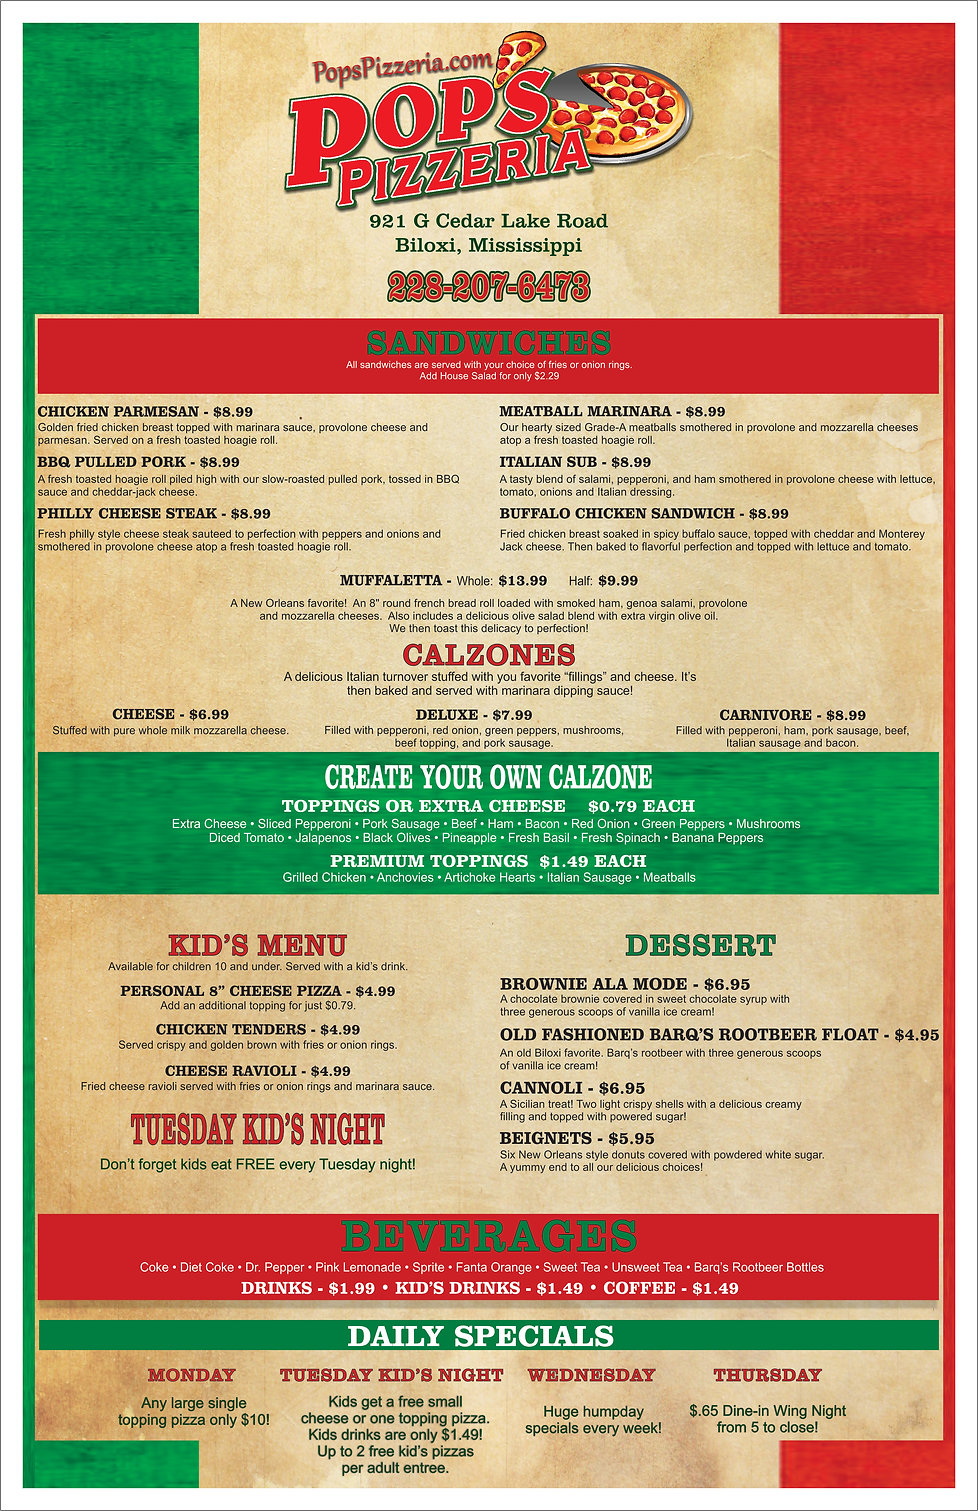 pops menu 11x17 side 2.jpg